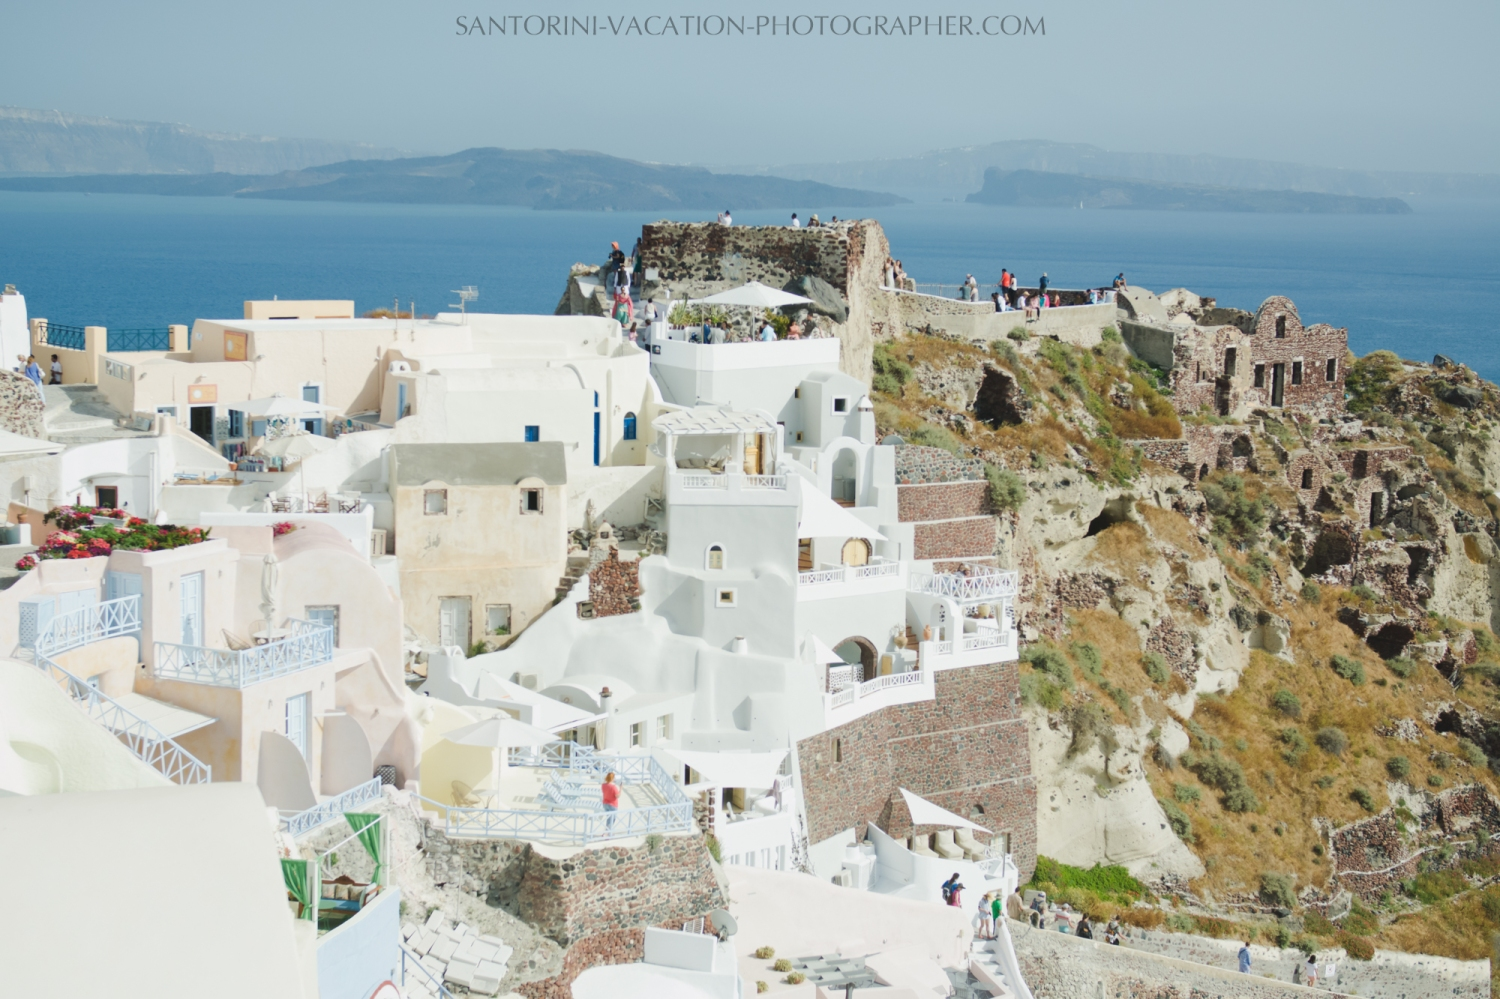 Oia-santorini-village-white-houses-castle-001